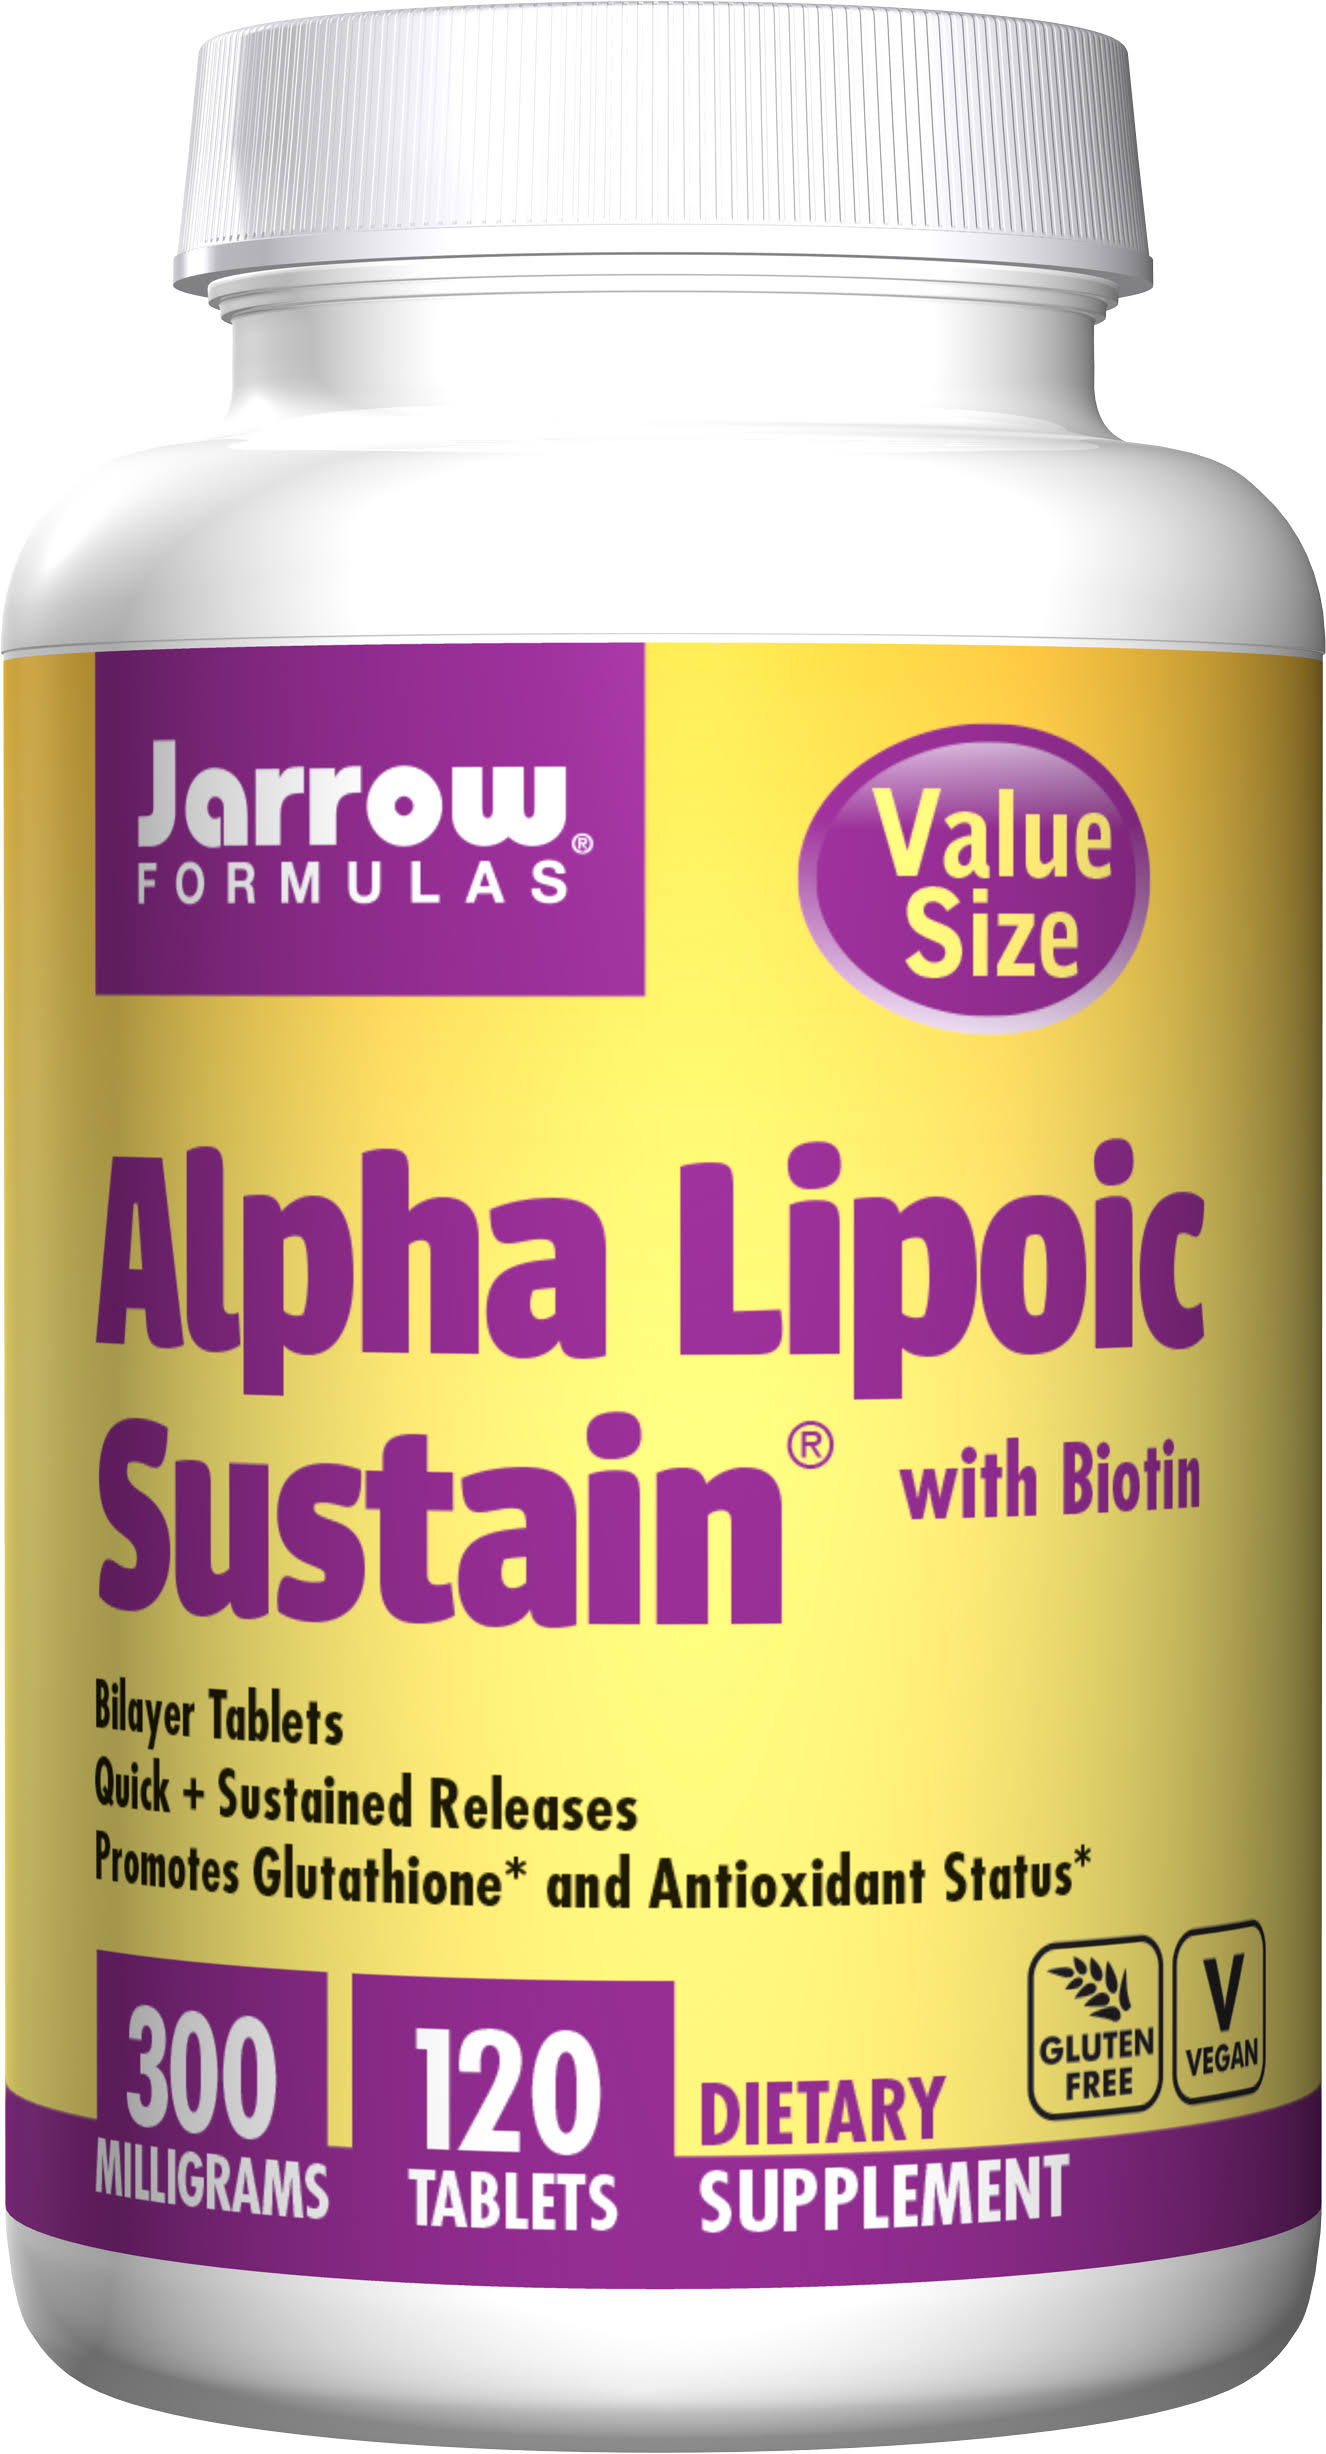 Jarrow Formulas Alpha Lipoic Sustain Supplement - 120 Count